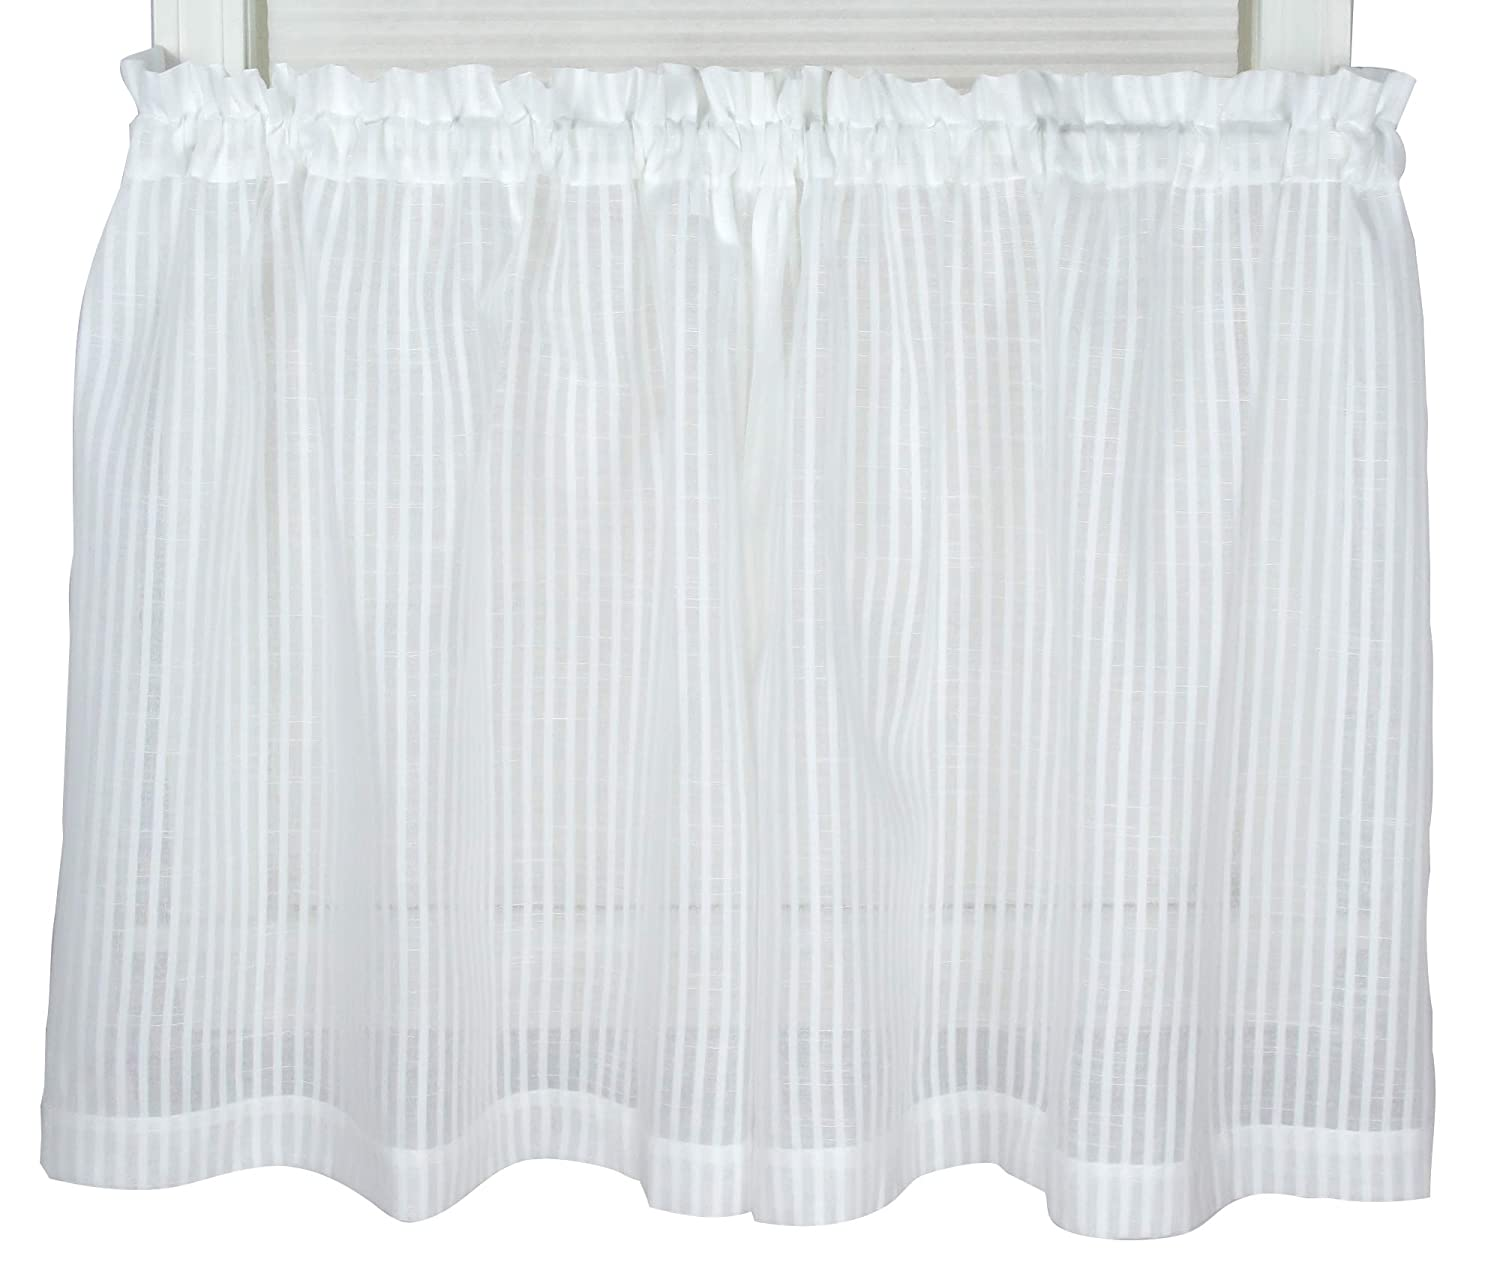 Bay Breeze Semi Sheer Stripe Tier Curtain 72